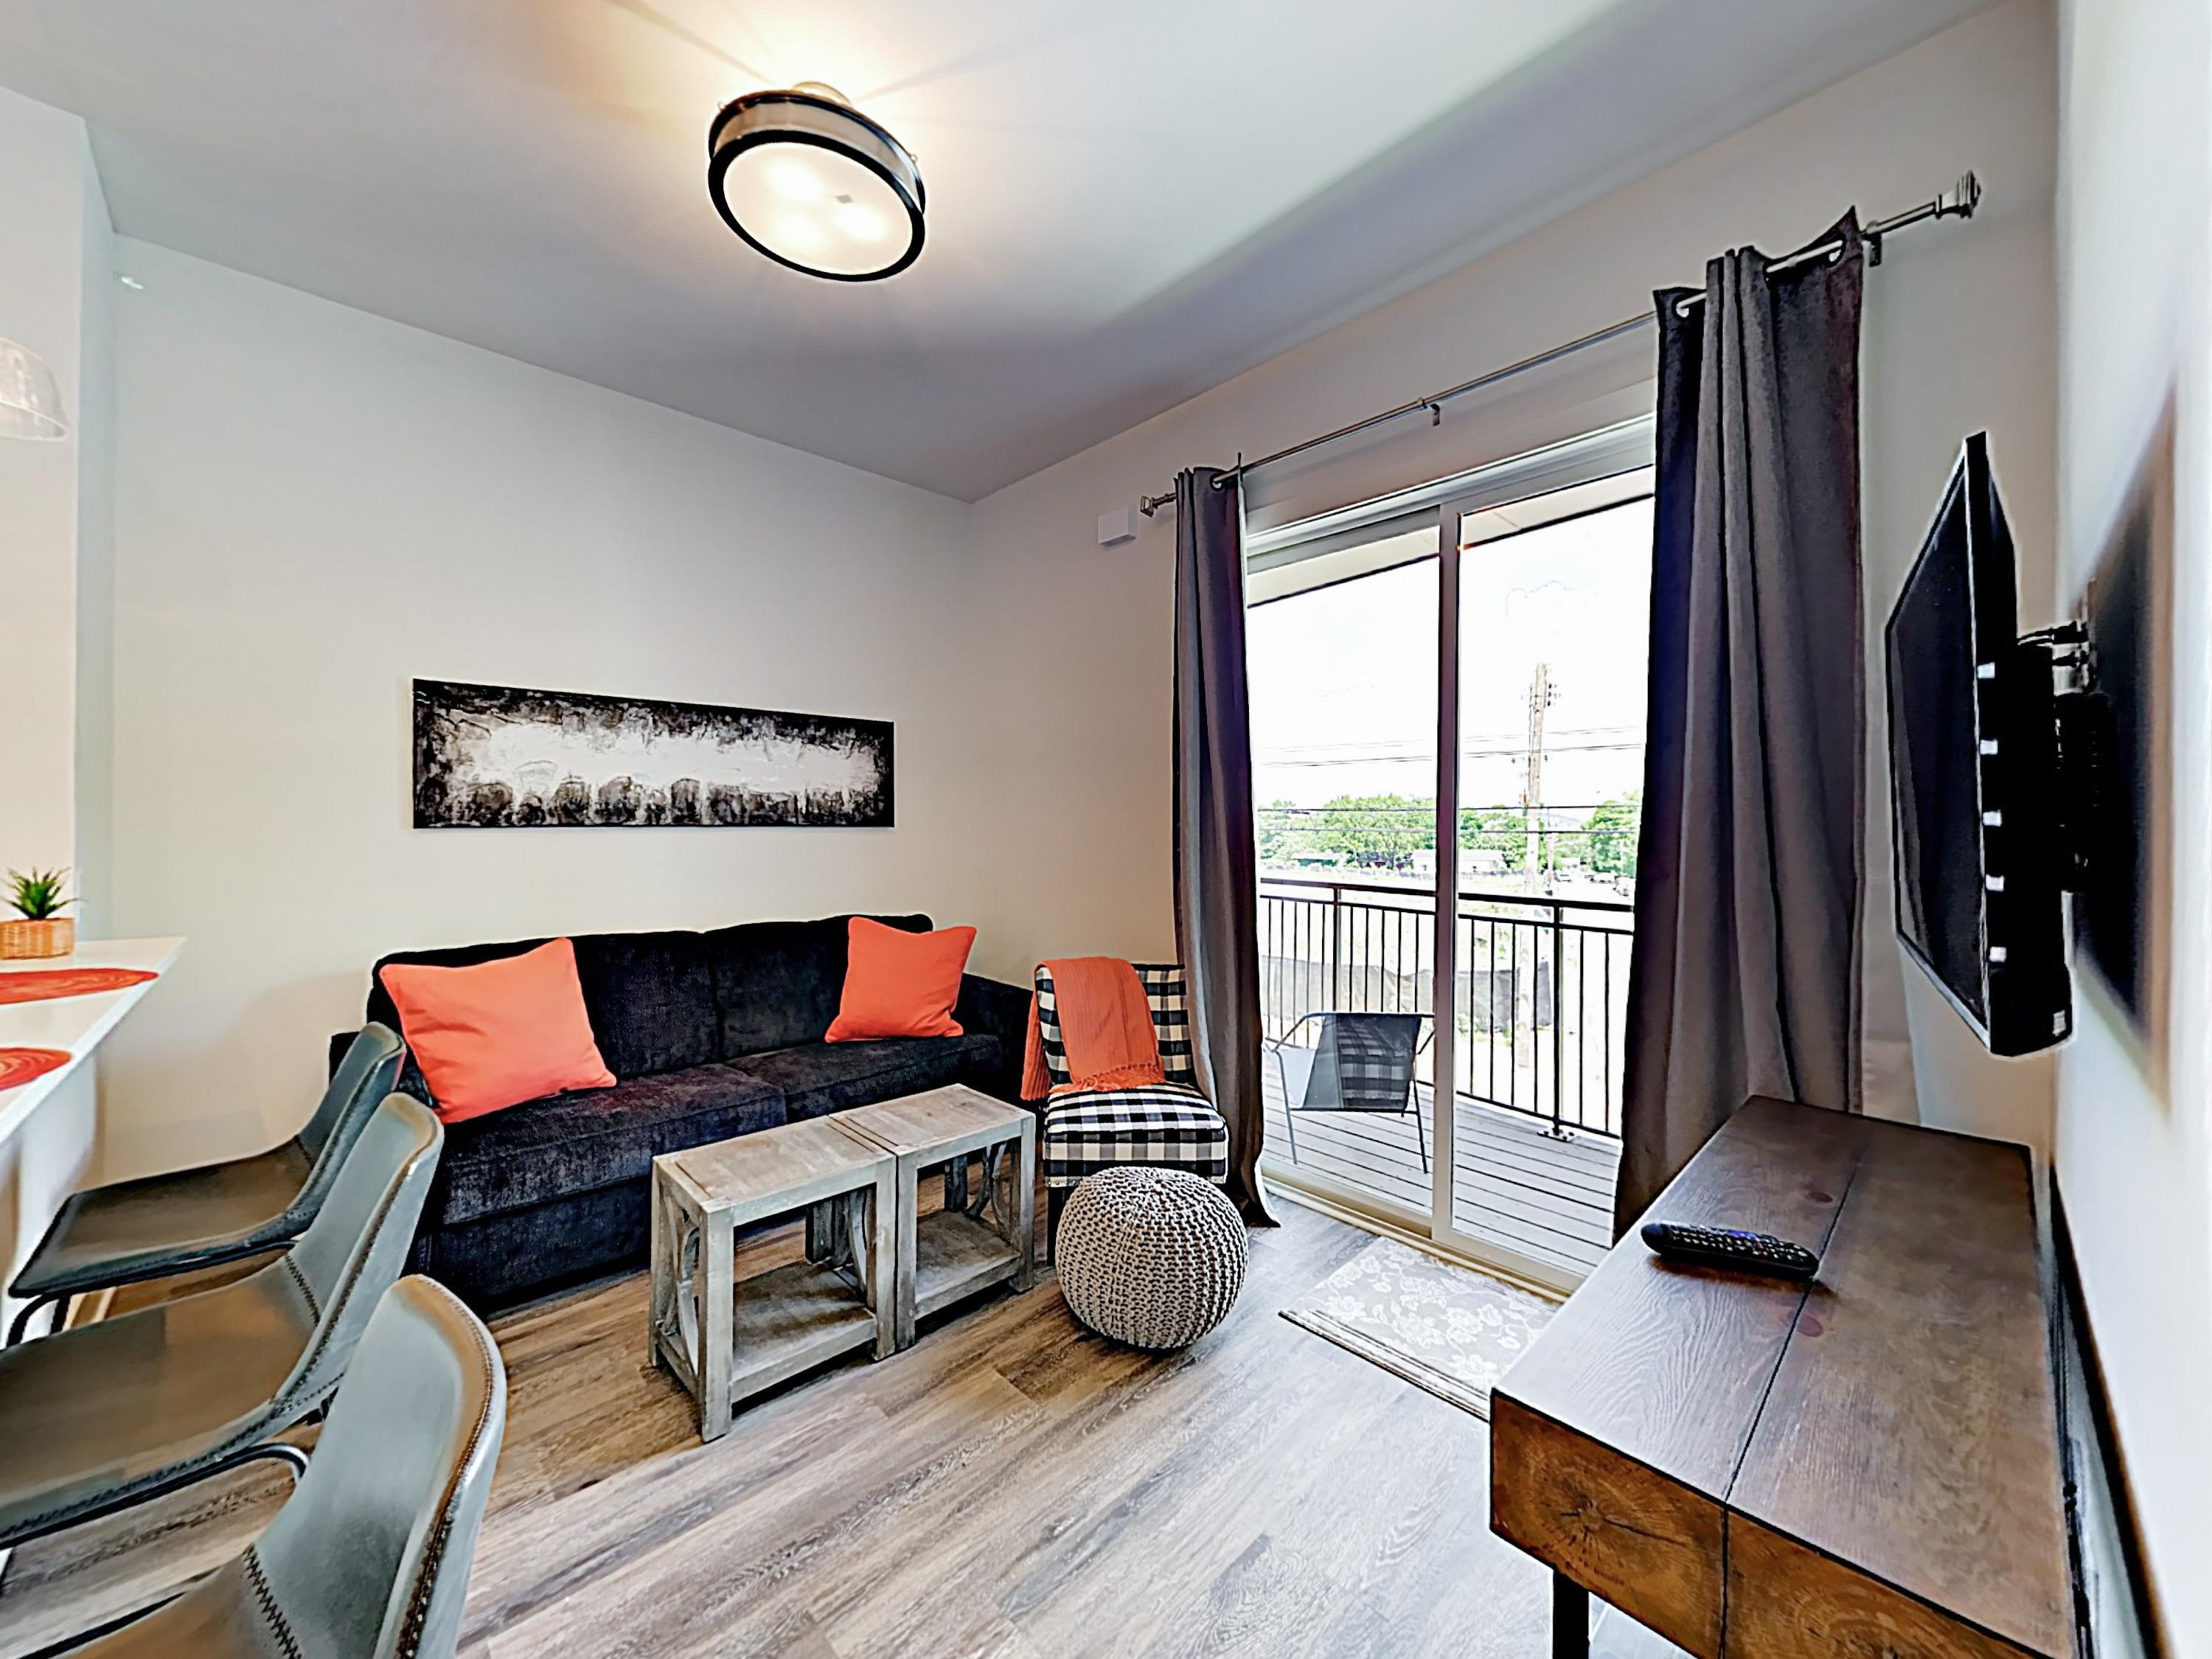 Welcome to Nashville! This rental is professionally managed by TurnKey Vacation Rentals.